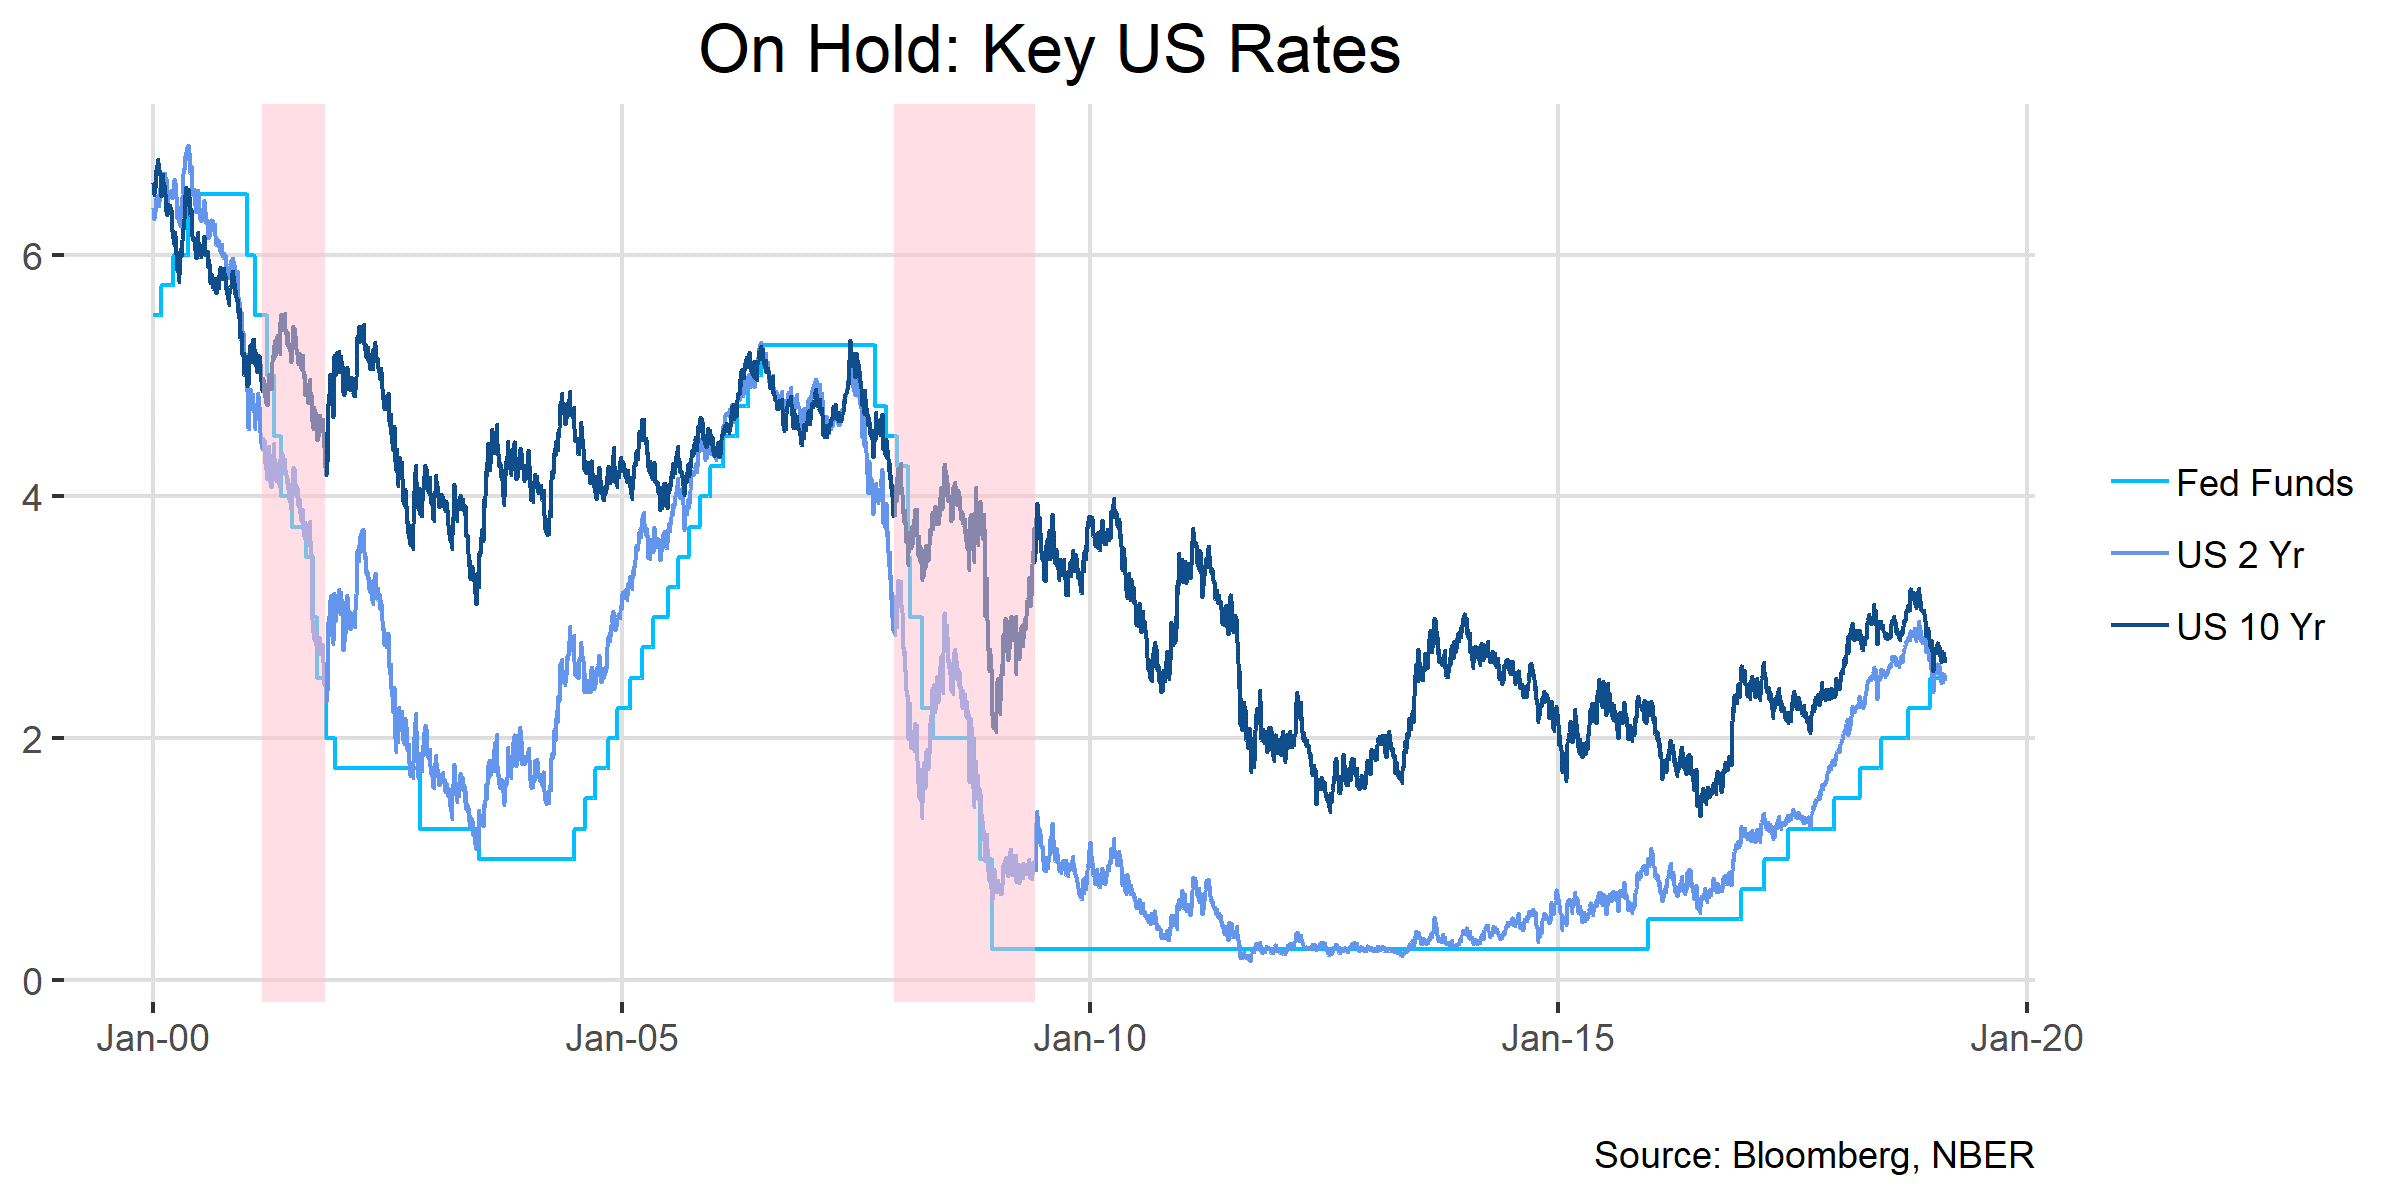 On Hold Key US Rates